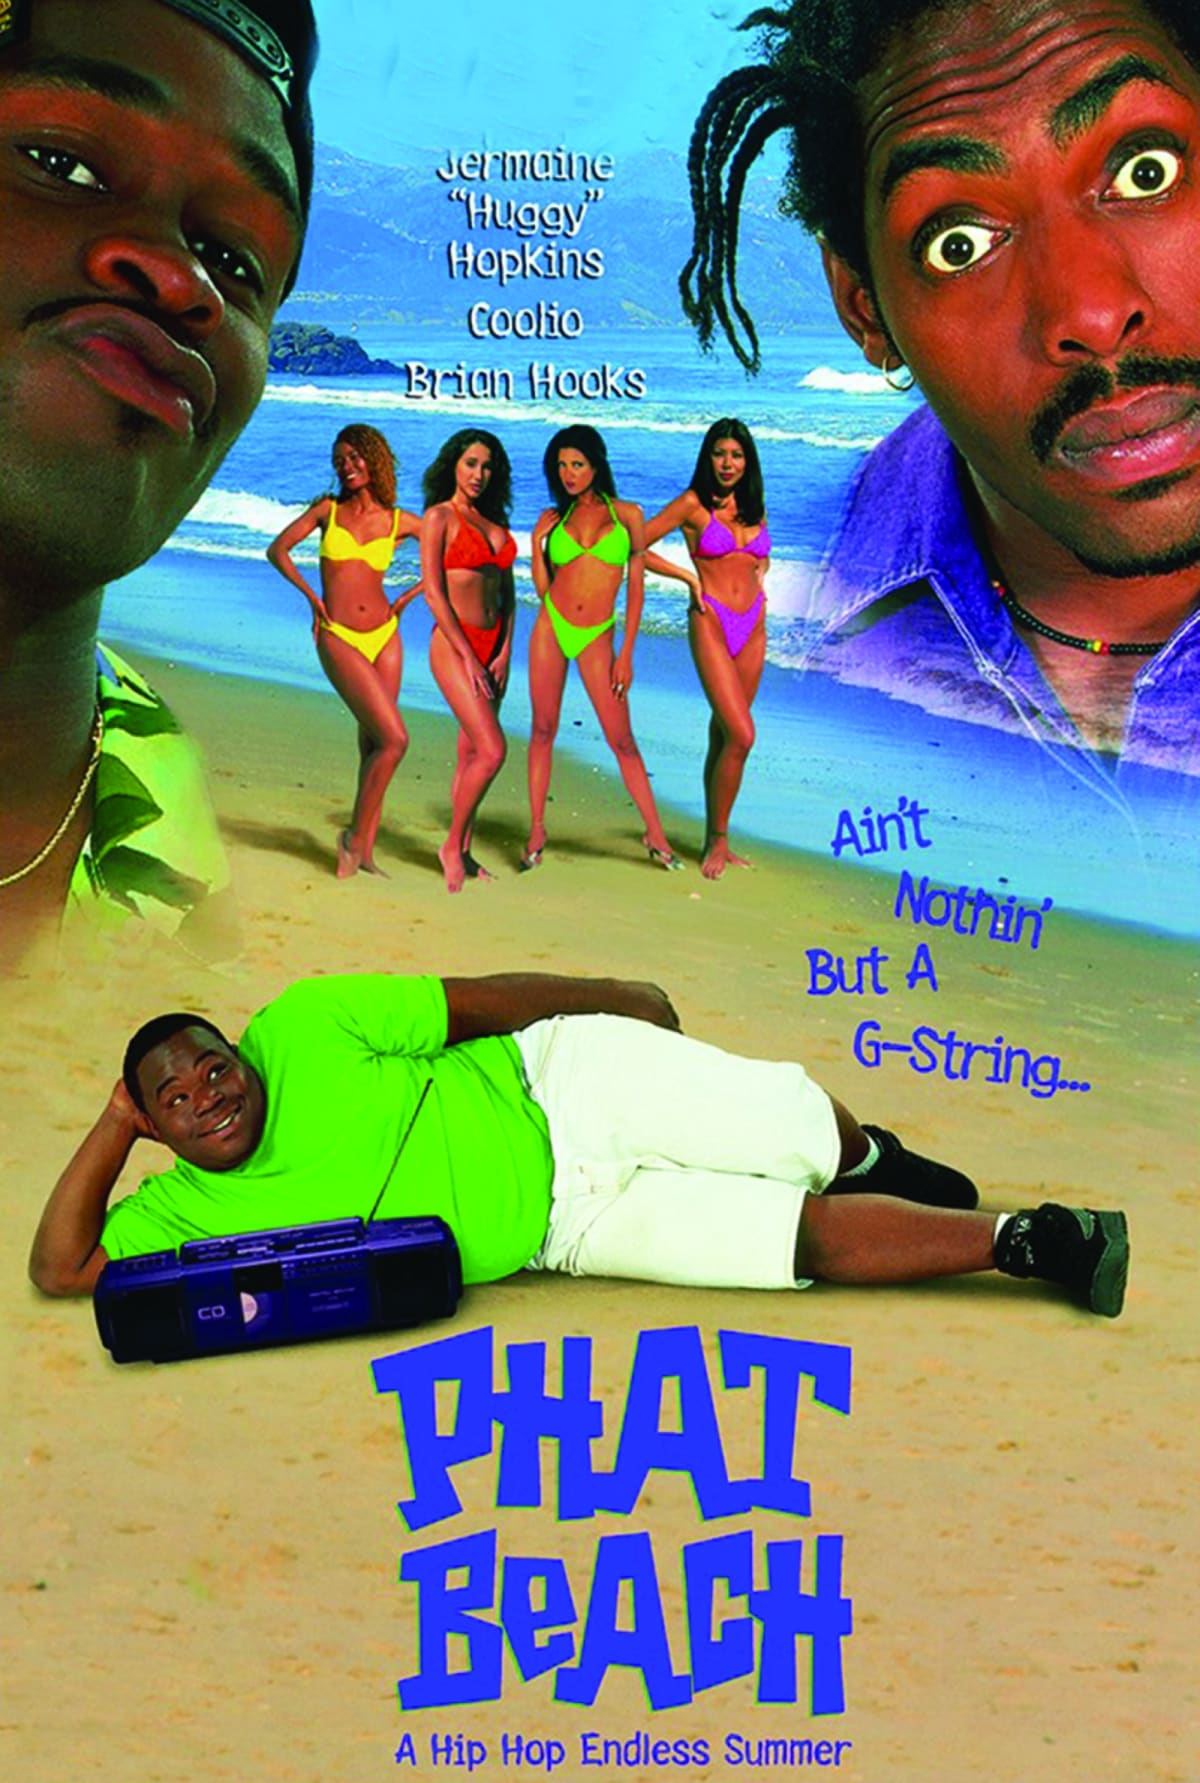 The Oral History of Phat Beach | Complex